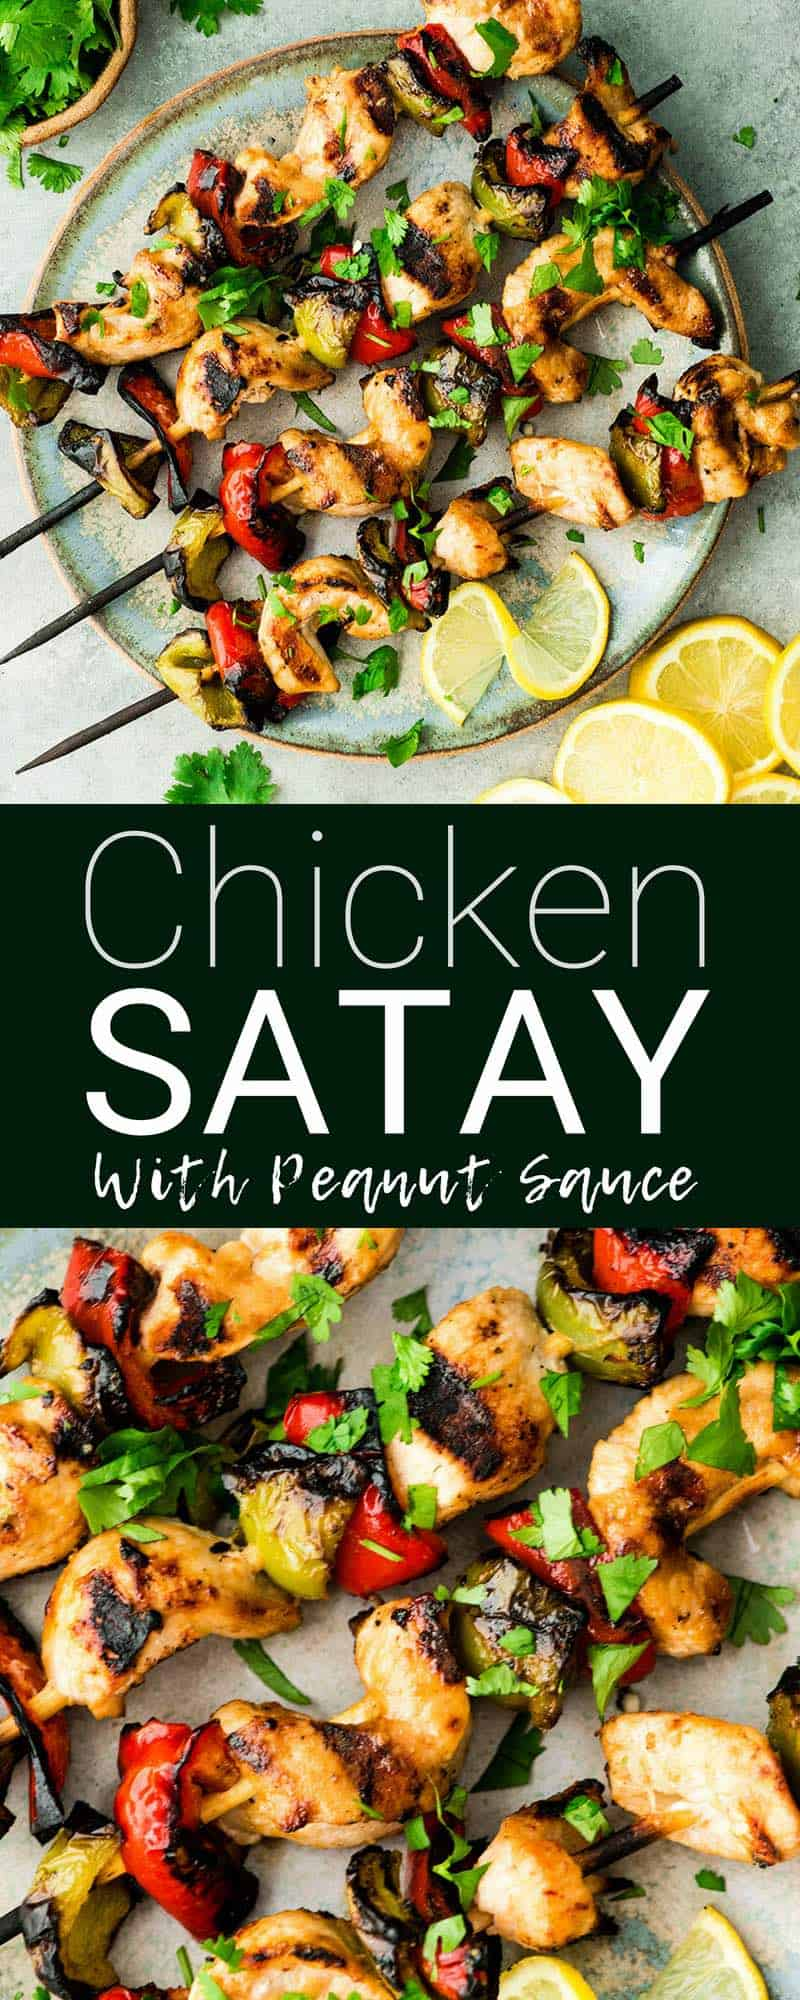 This easy Chicken Satay recipe is SO delicious you will want to make it on repeat! Chicken and veggies are grilled to perfection and brushed with the best peanut sauce EVER. It's the perfect heathy recipe to serve for dinner or to meal prep and enjoy all week long! #chickensatay #satay #peanutsauce #BBQ #kabob #grill #maindish #chicken #thai #healthyrecipe #glutenfree #dairyfree #appetizer